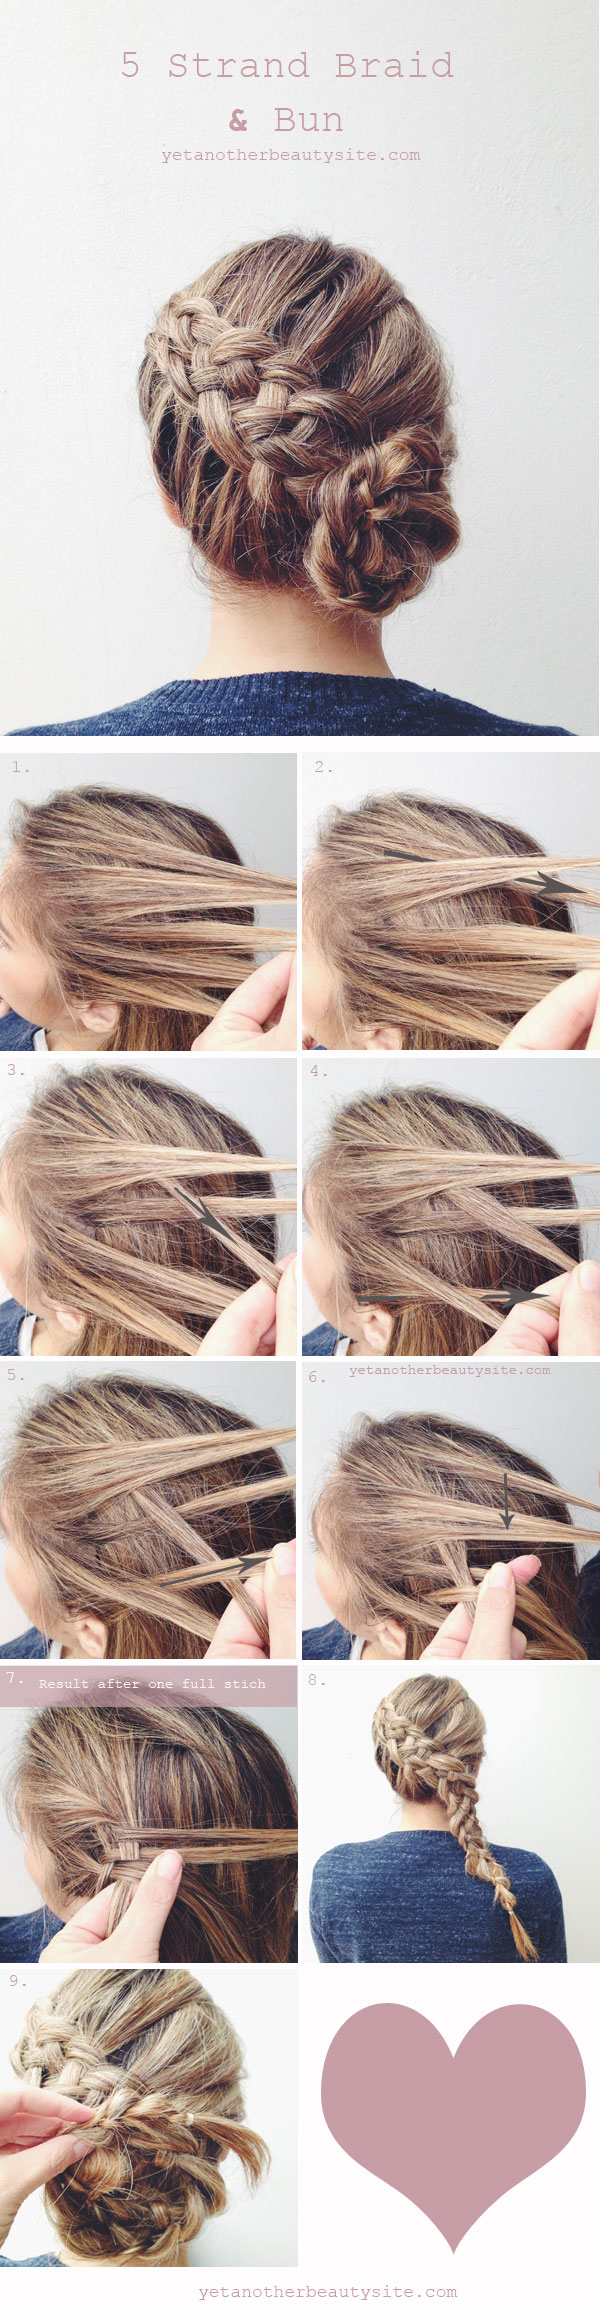 Diy Wedding Updos 20 Diy Wedding Hairstyles With Tutorials To Try On Your Own